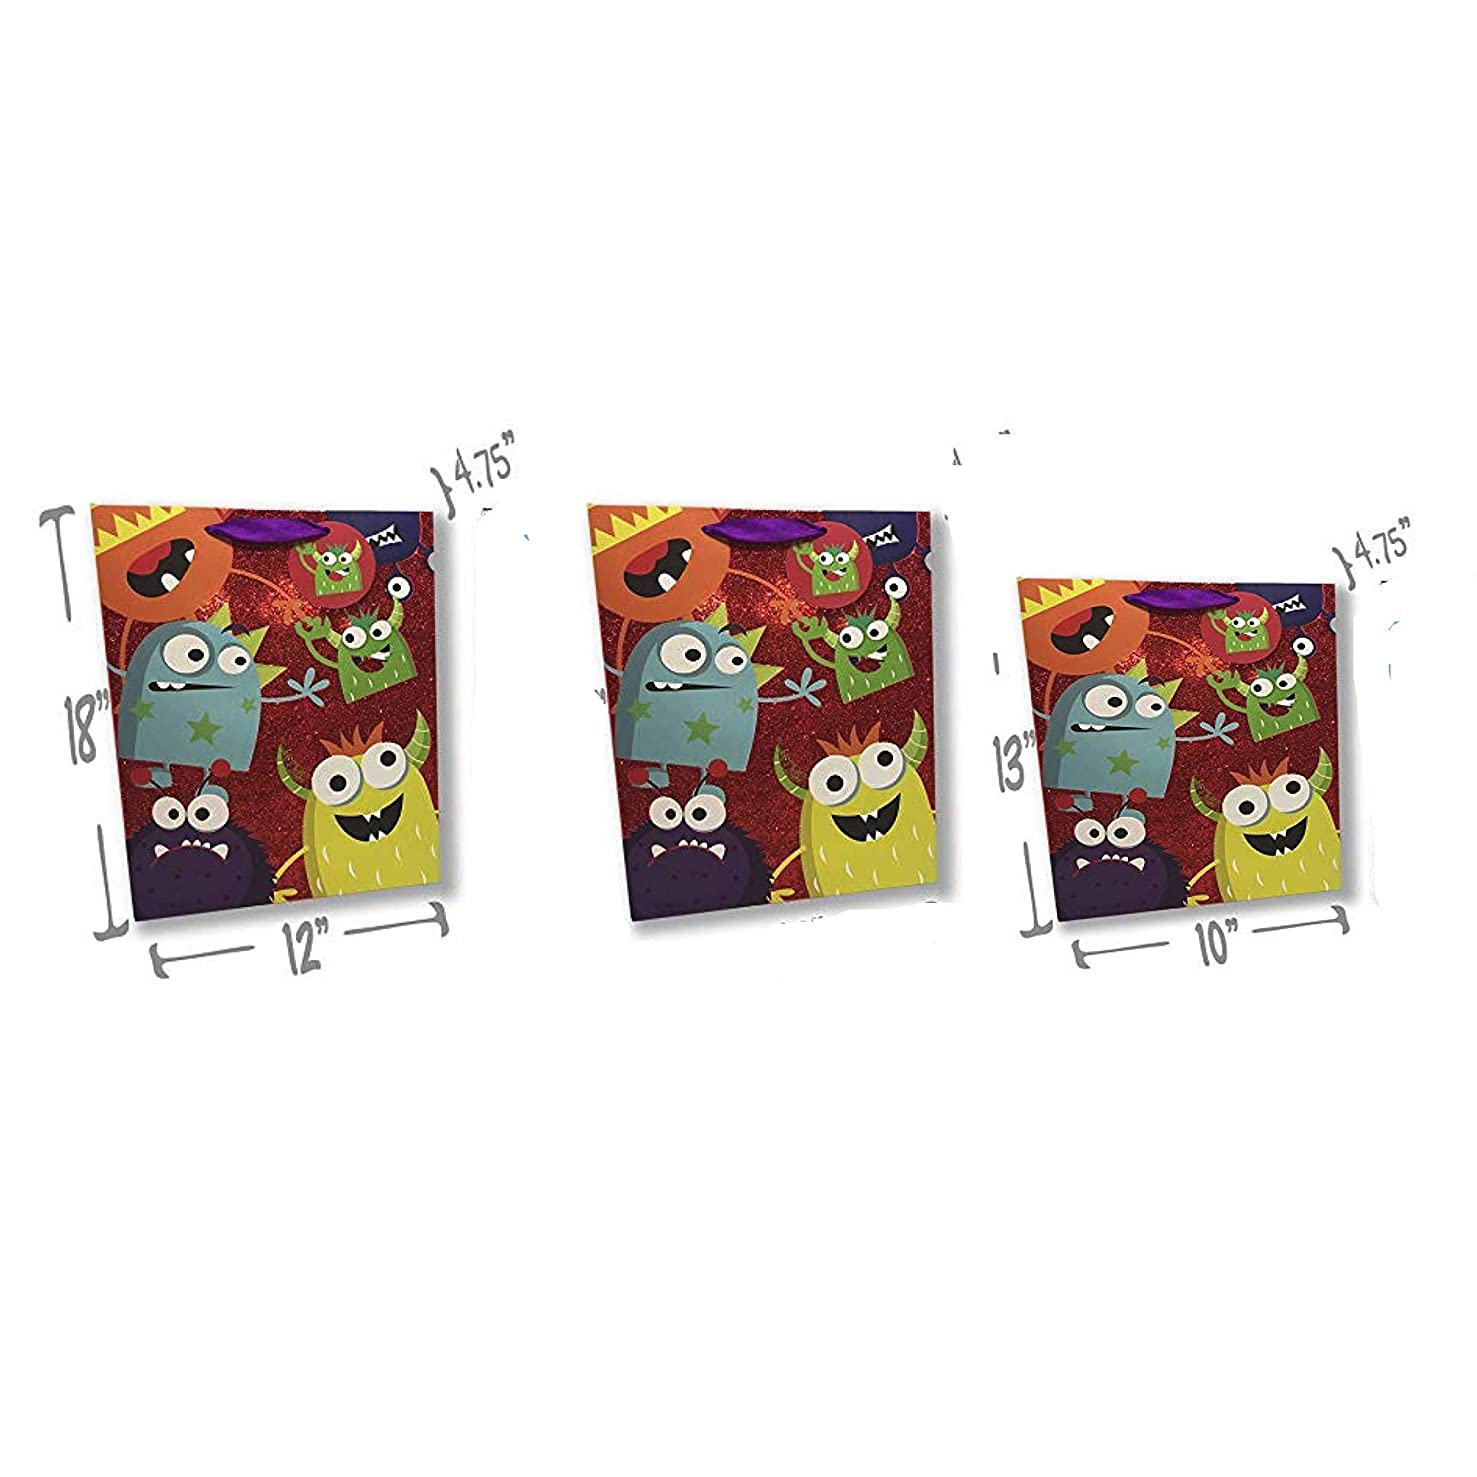 Monster Gift Bags - Set of 3 Premium Quality Gift Bag Sets Glitter Detail Inside Print Plus Gift Tag (Monster Party Fun, 2 Jumbo & 1 Large)